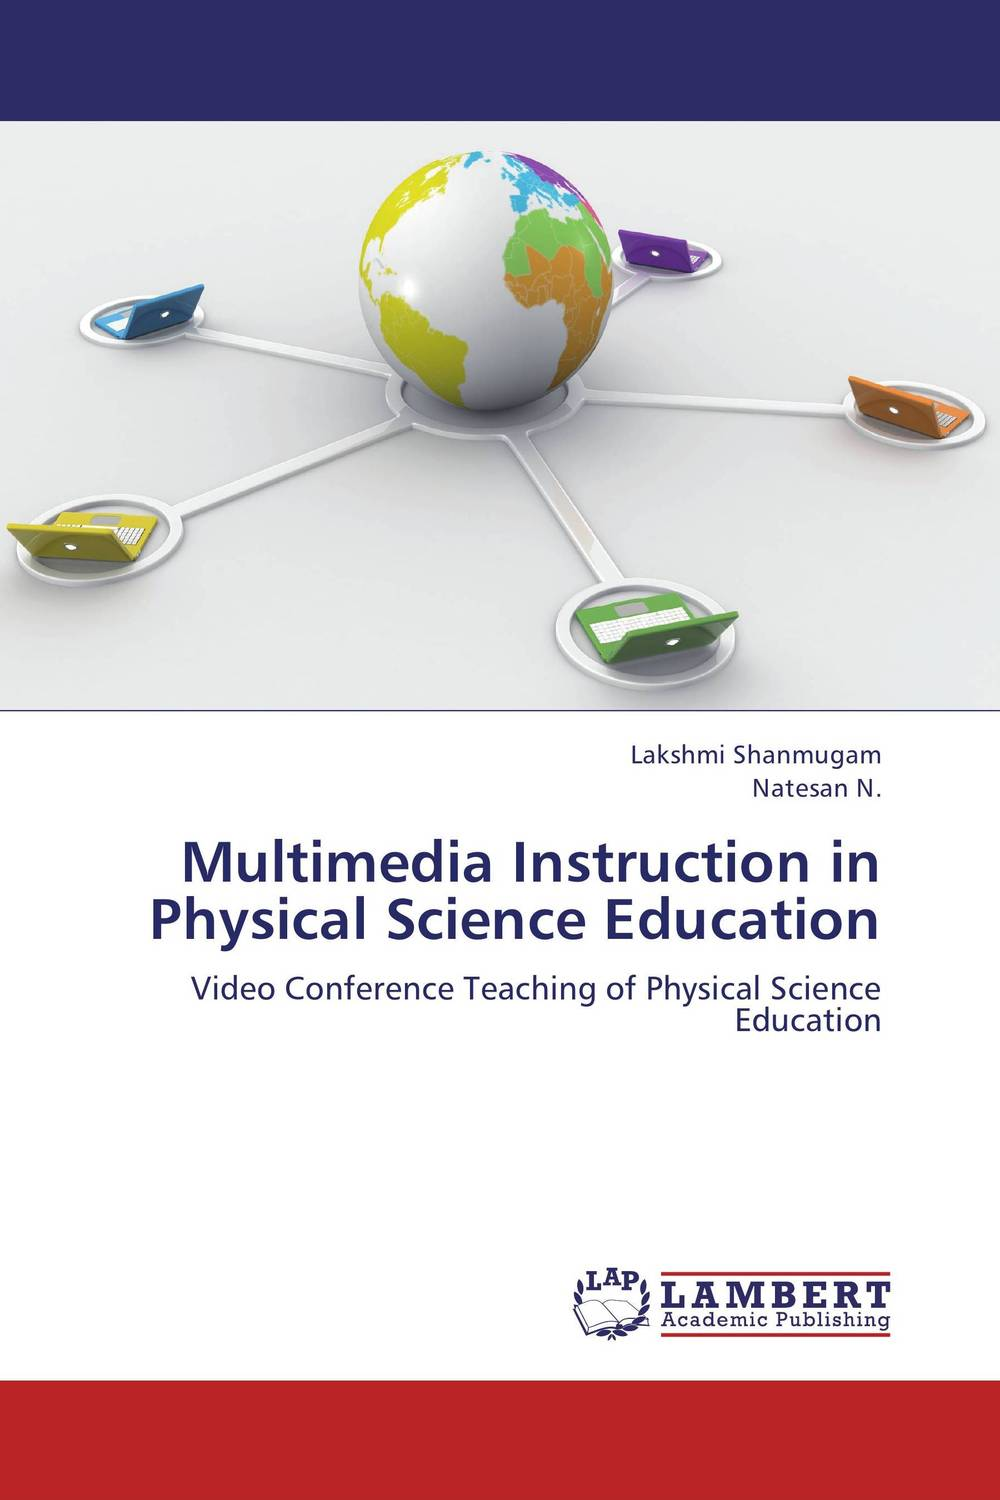 Multimedia Instruction in Physical Science Education